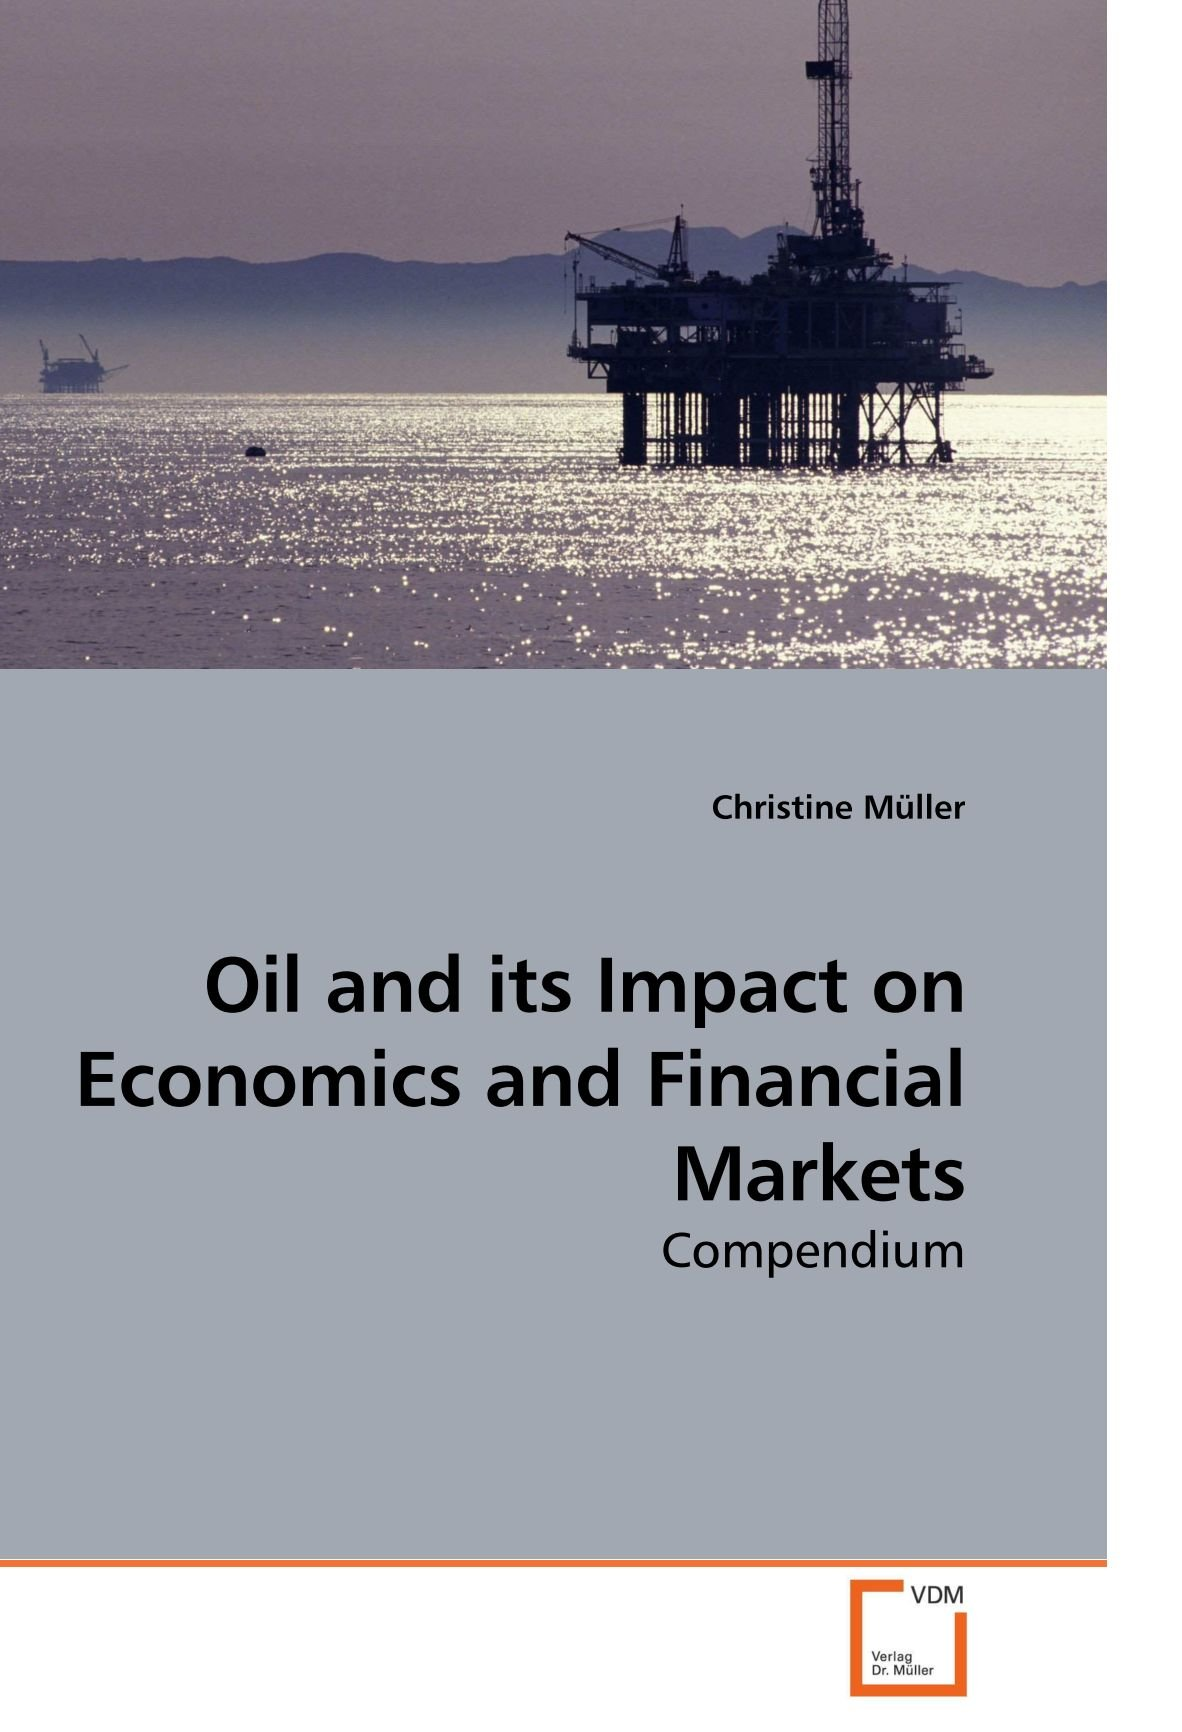 Download Oil and its Impact on Economics and Financial Markets: Compendium pdf